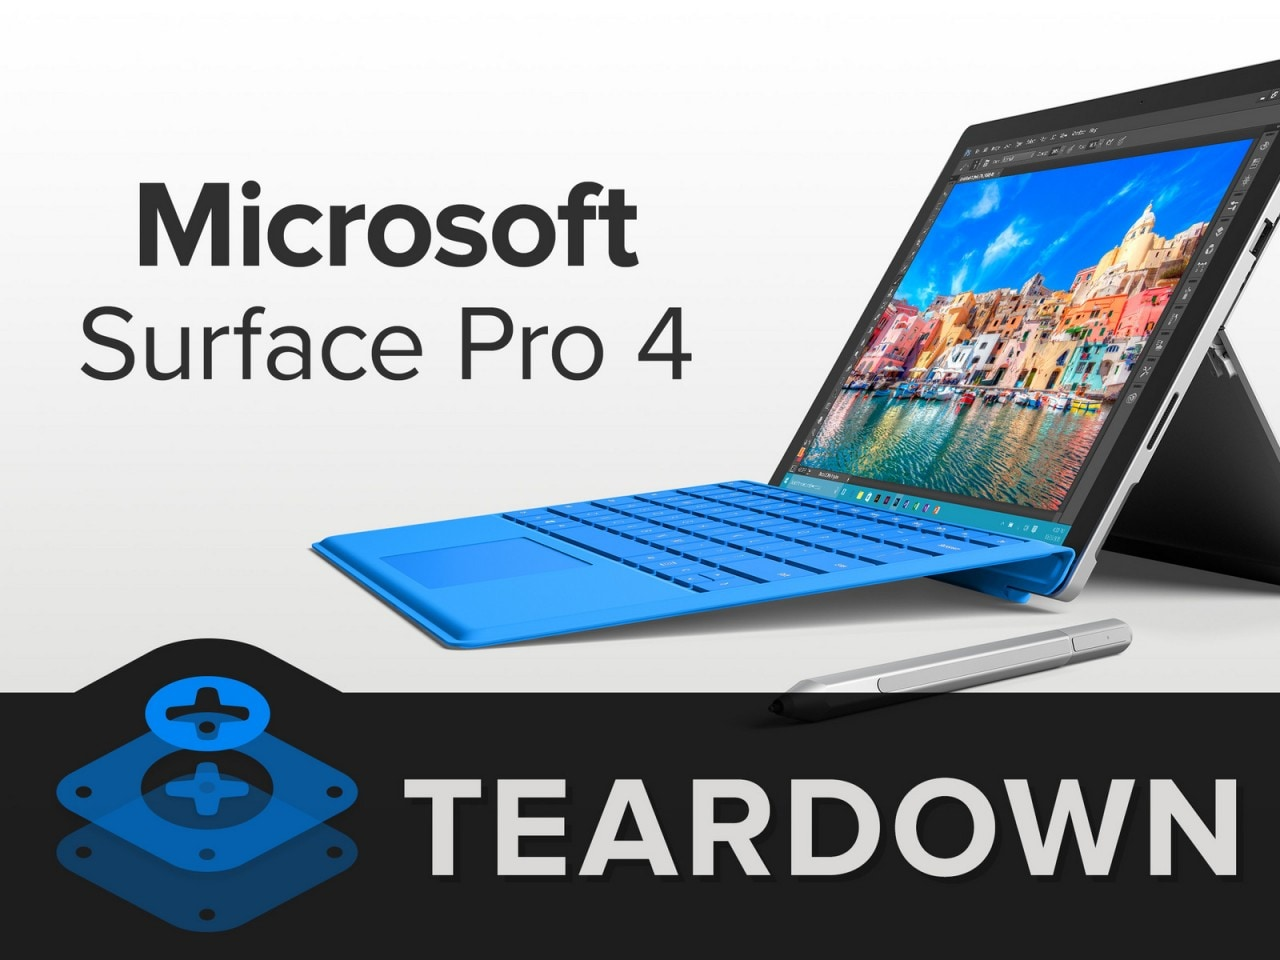 Teardown Microsoft Surface Pro 4